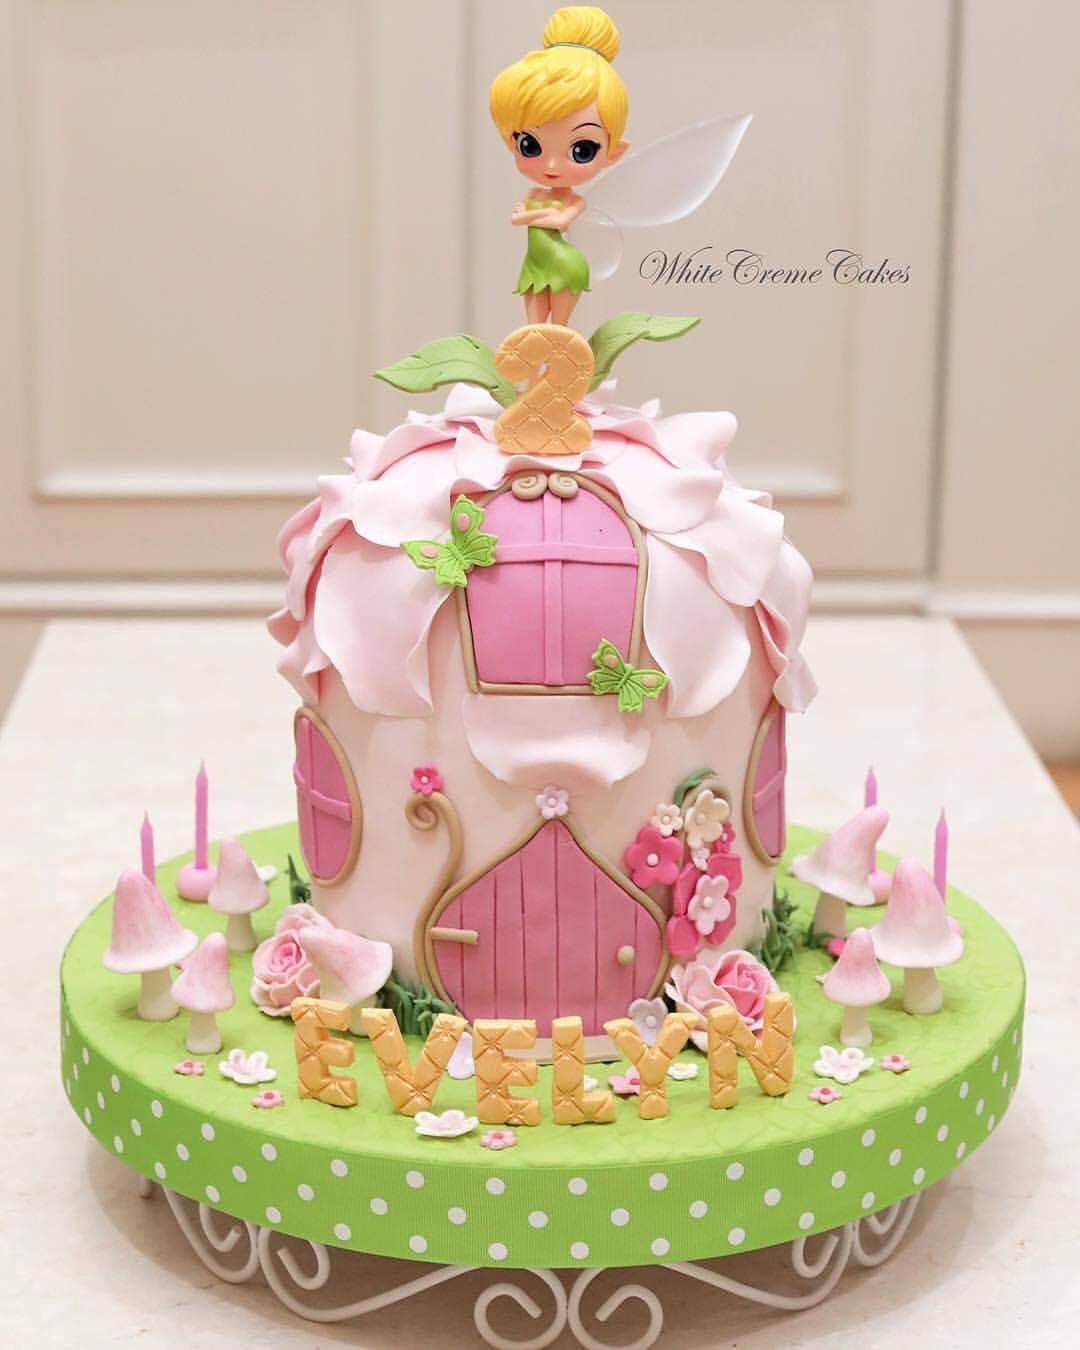 This Beautiful Tinkerbell Cake Is Sure To Be Any Girl S Birthday Wish Come True Whitecremecakes Tinkerbell Cake Fairy House Cake 1st Birthday Cakes